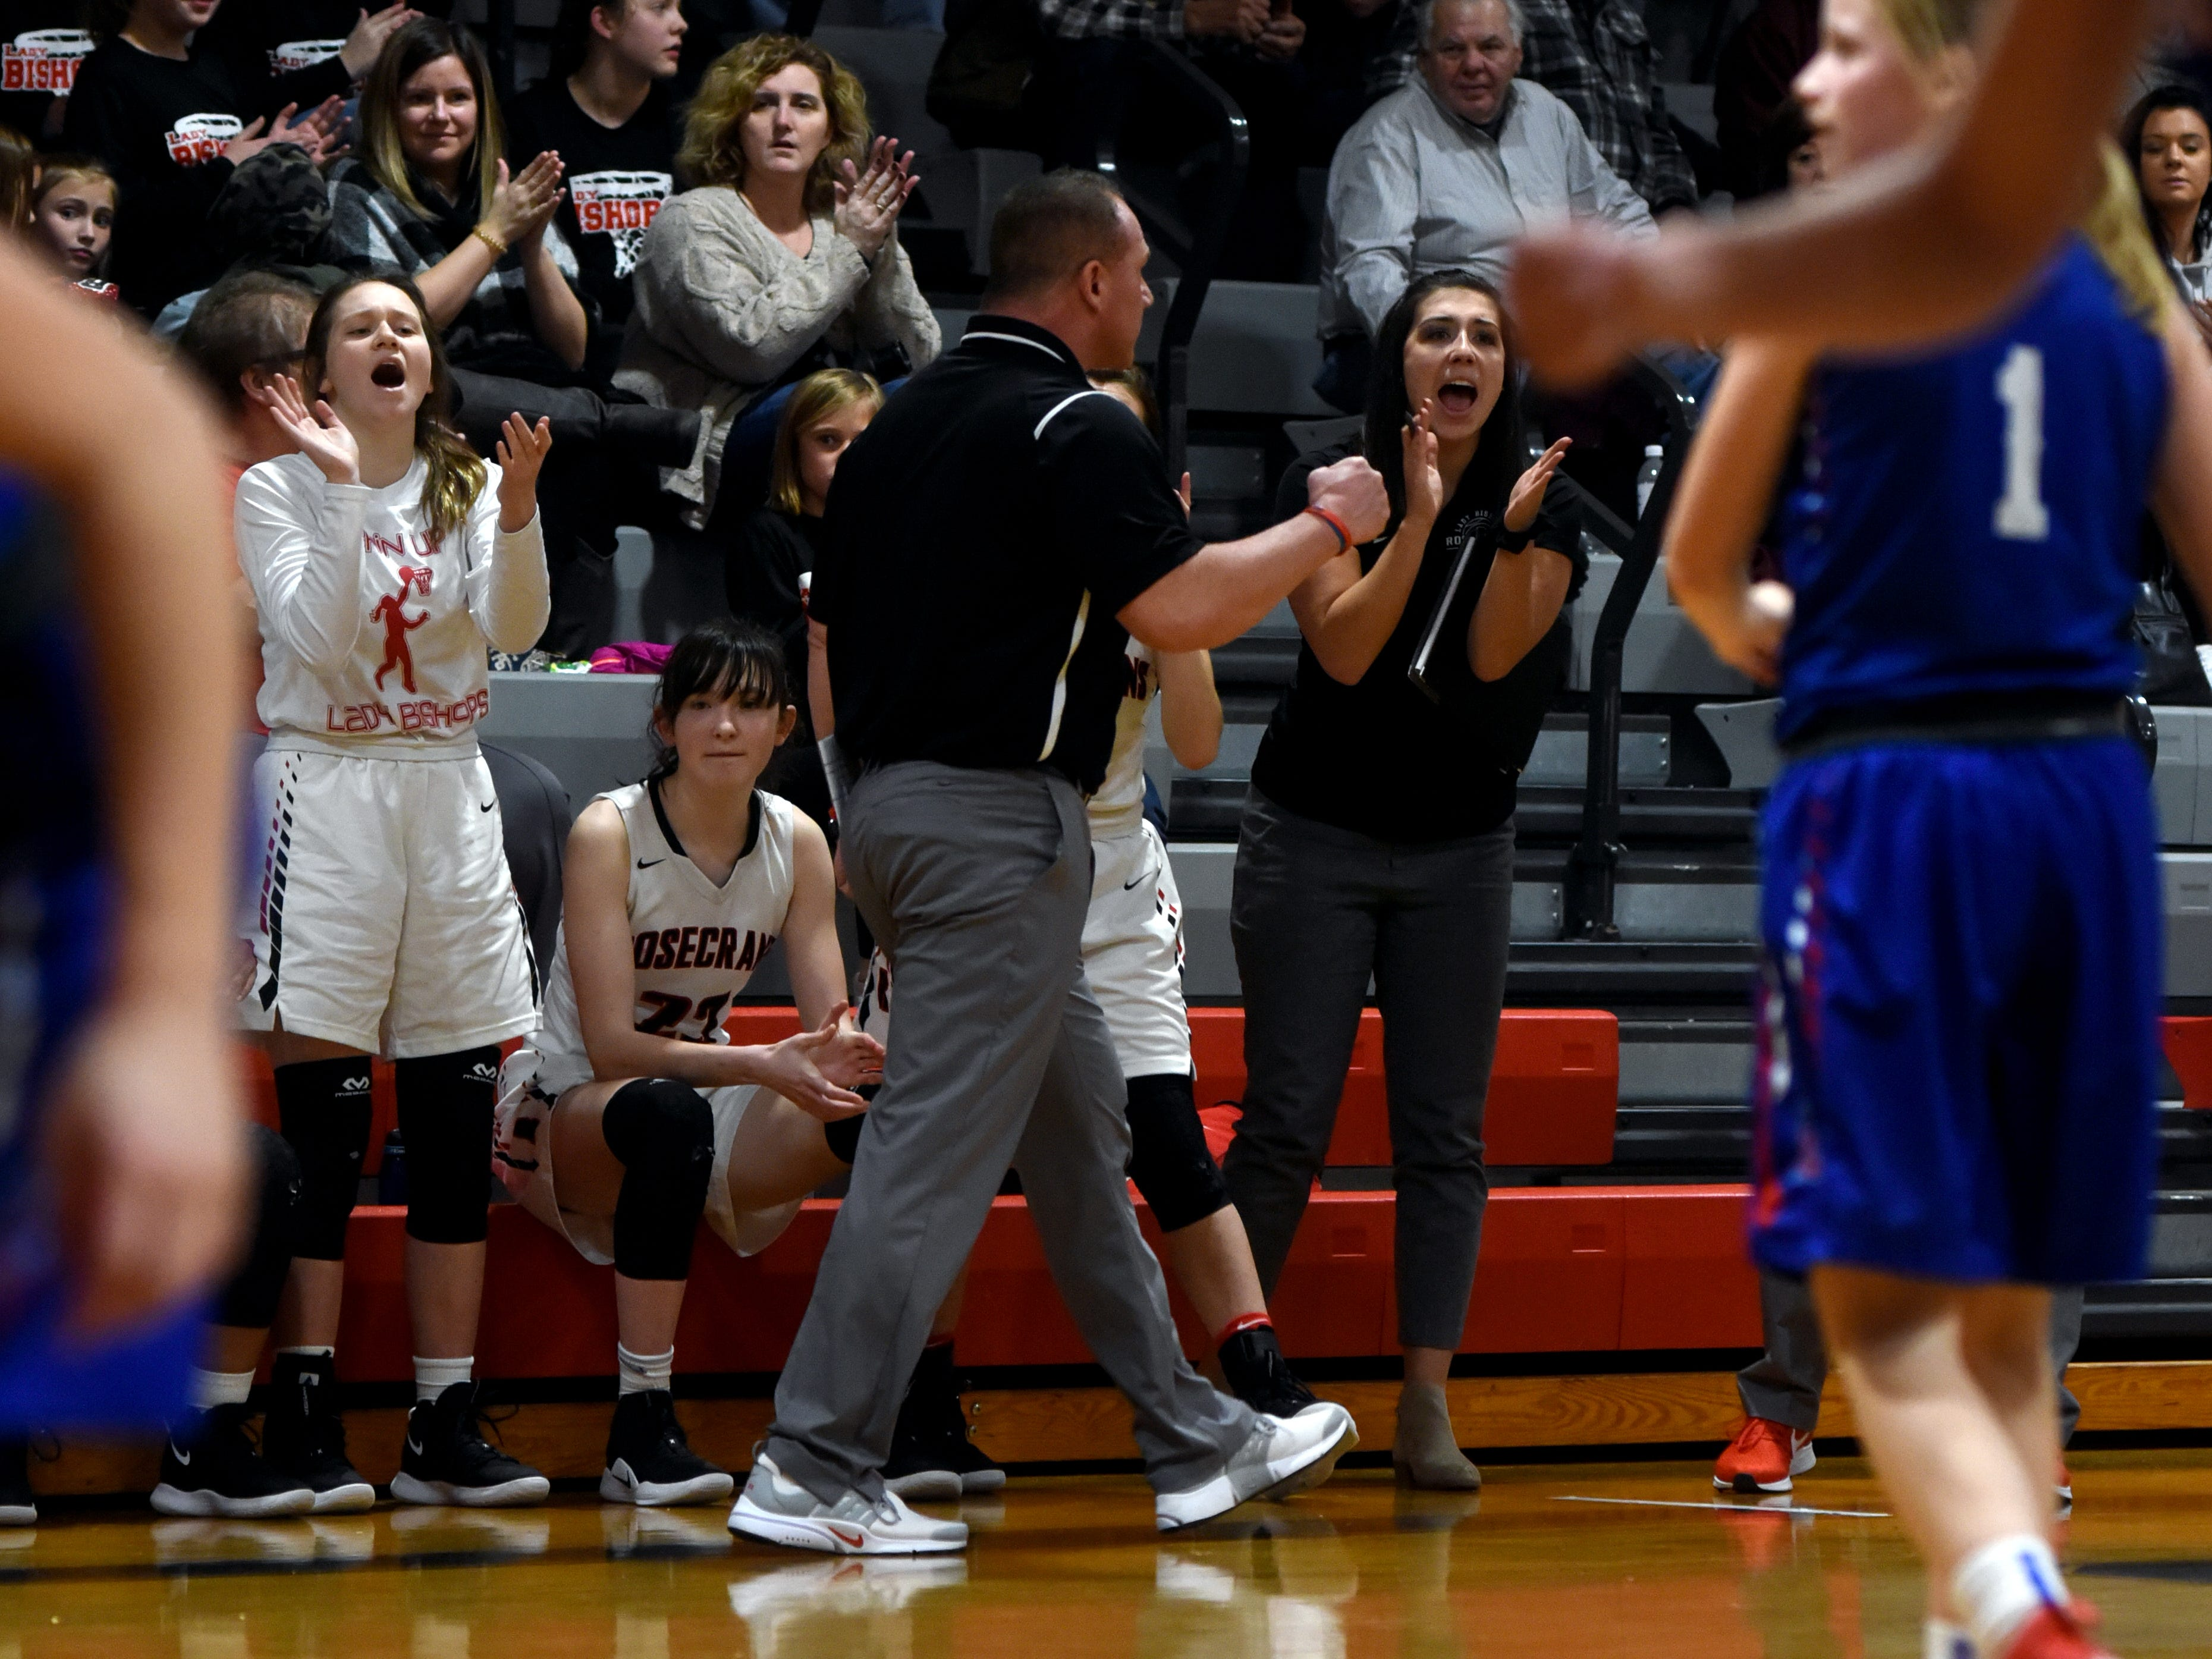 Rosecrans' bench celebrates Jenna Carlisle's three-point play in the fourth quarter on Monday night at Rogge Gymnasium.